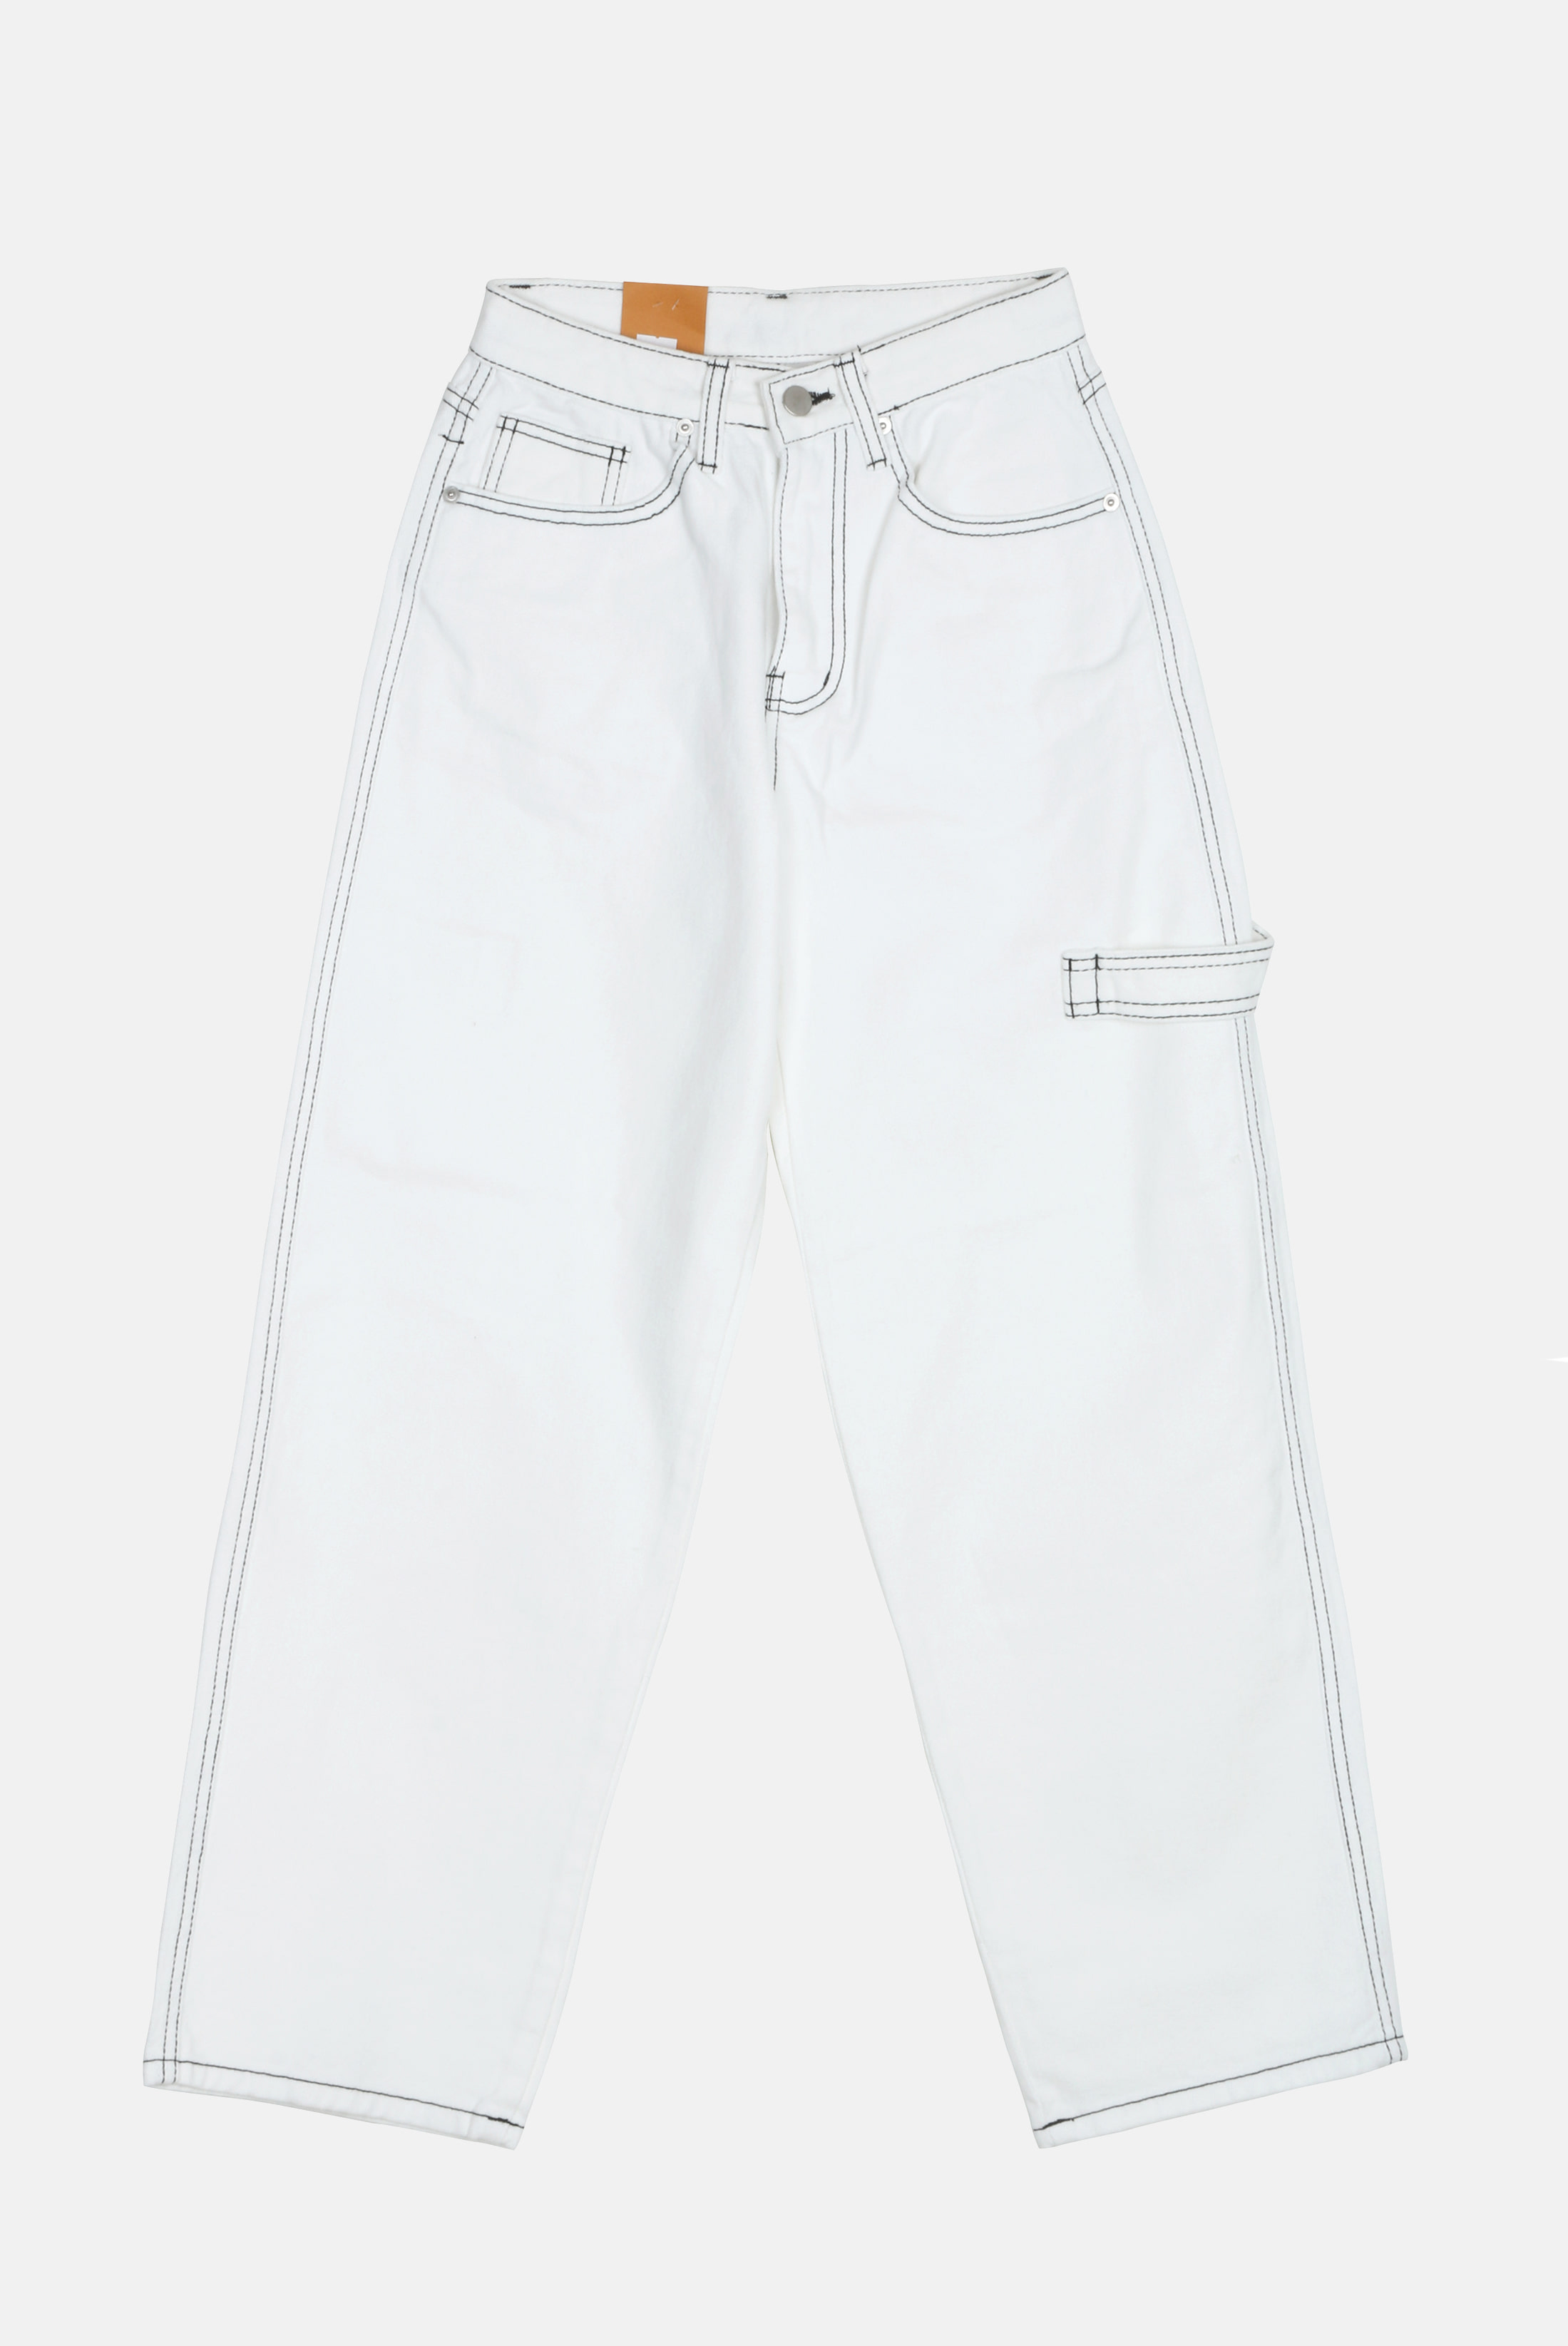 (W) Pitch_Stitch Carpenter Pants